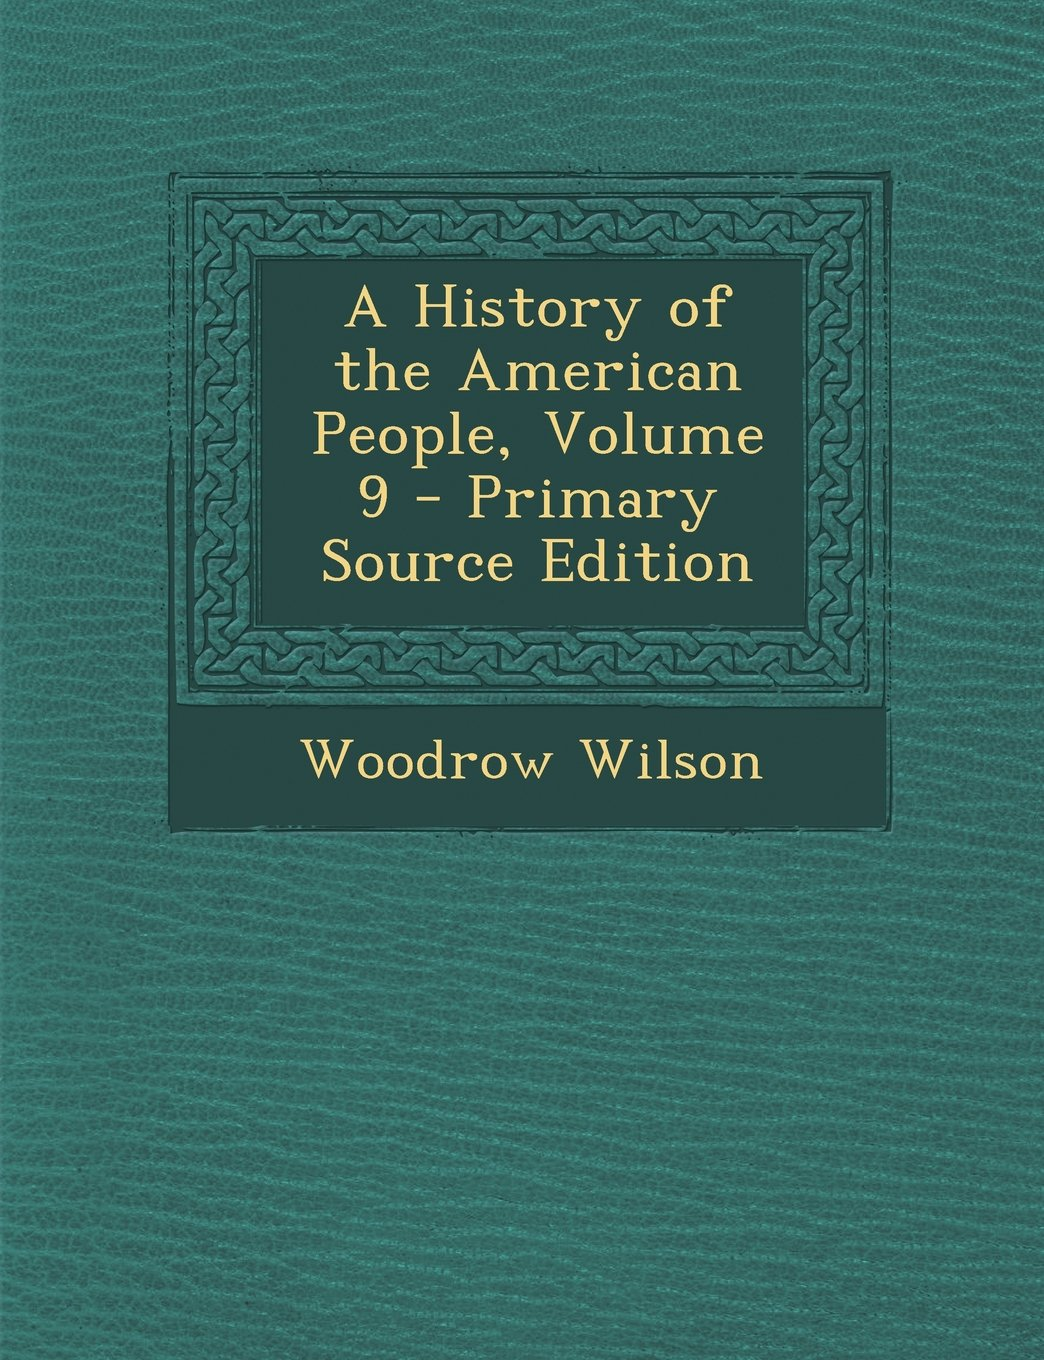 Read Online A History of the American People, Volume 9 - Primary Source Edition PDF